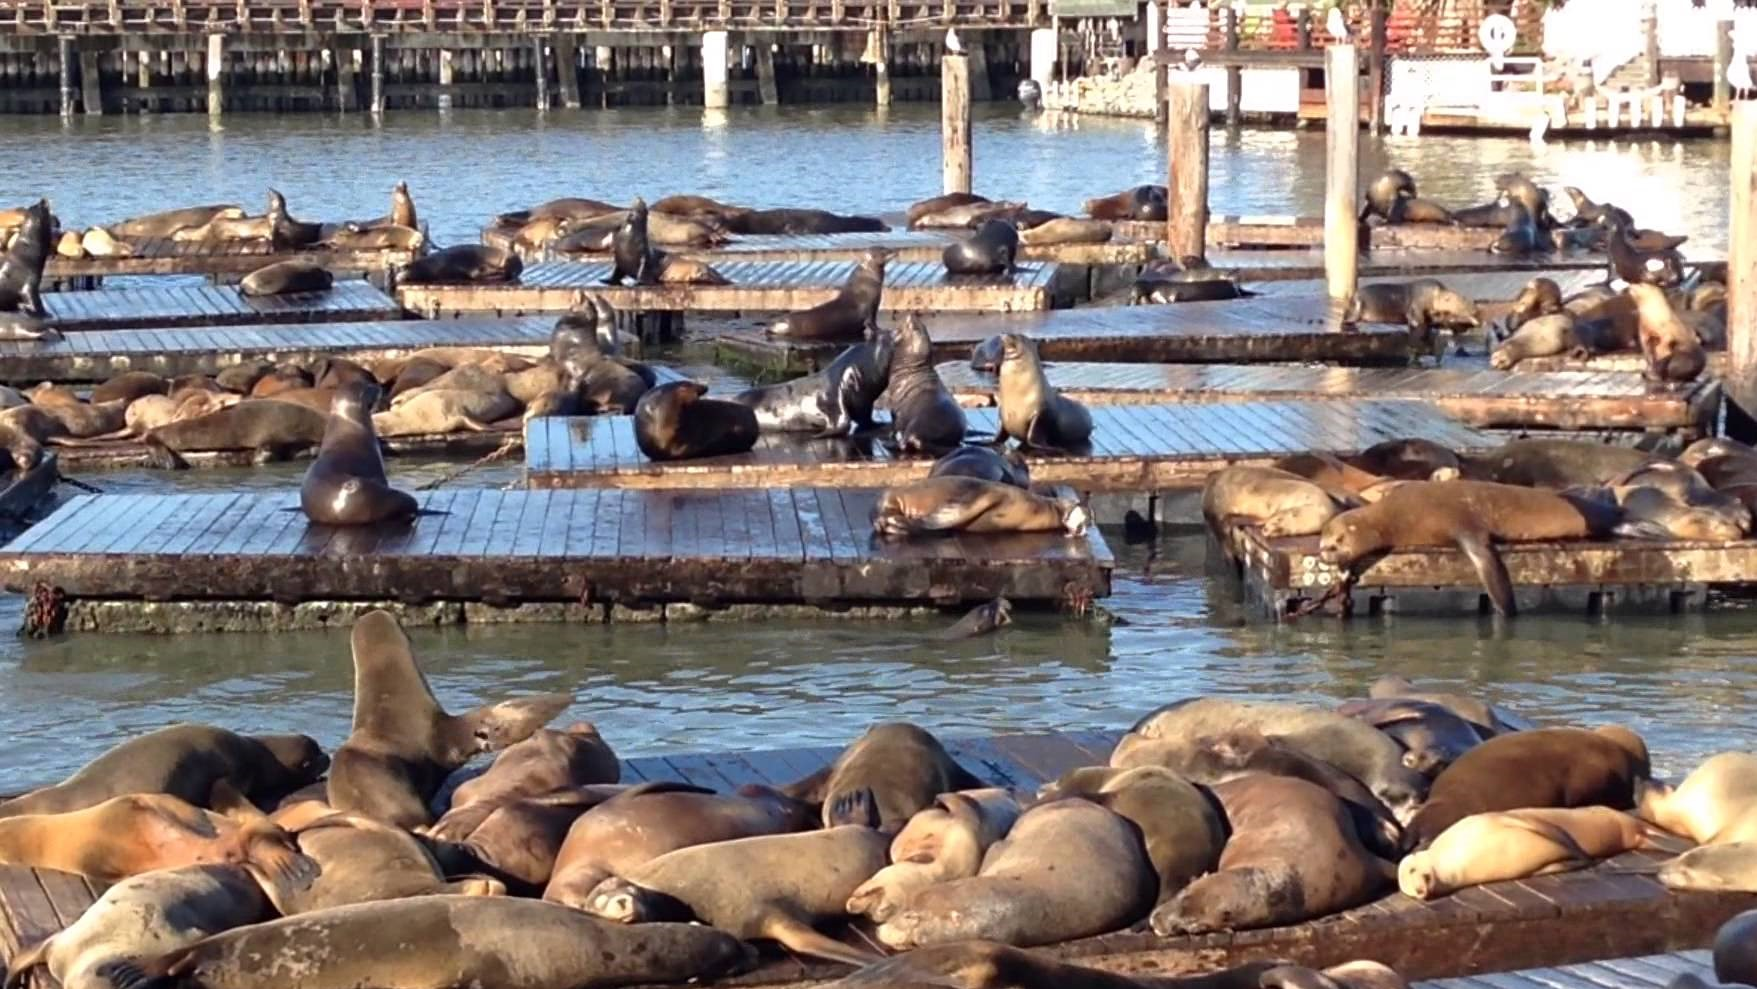 Swimmer seriously injured by sea lion in San Francisco bay